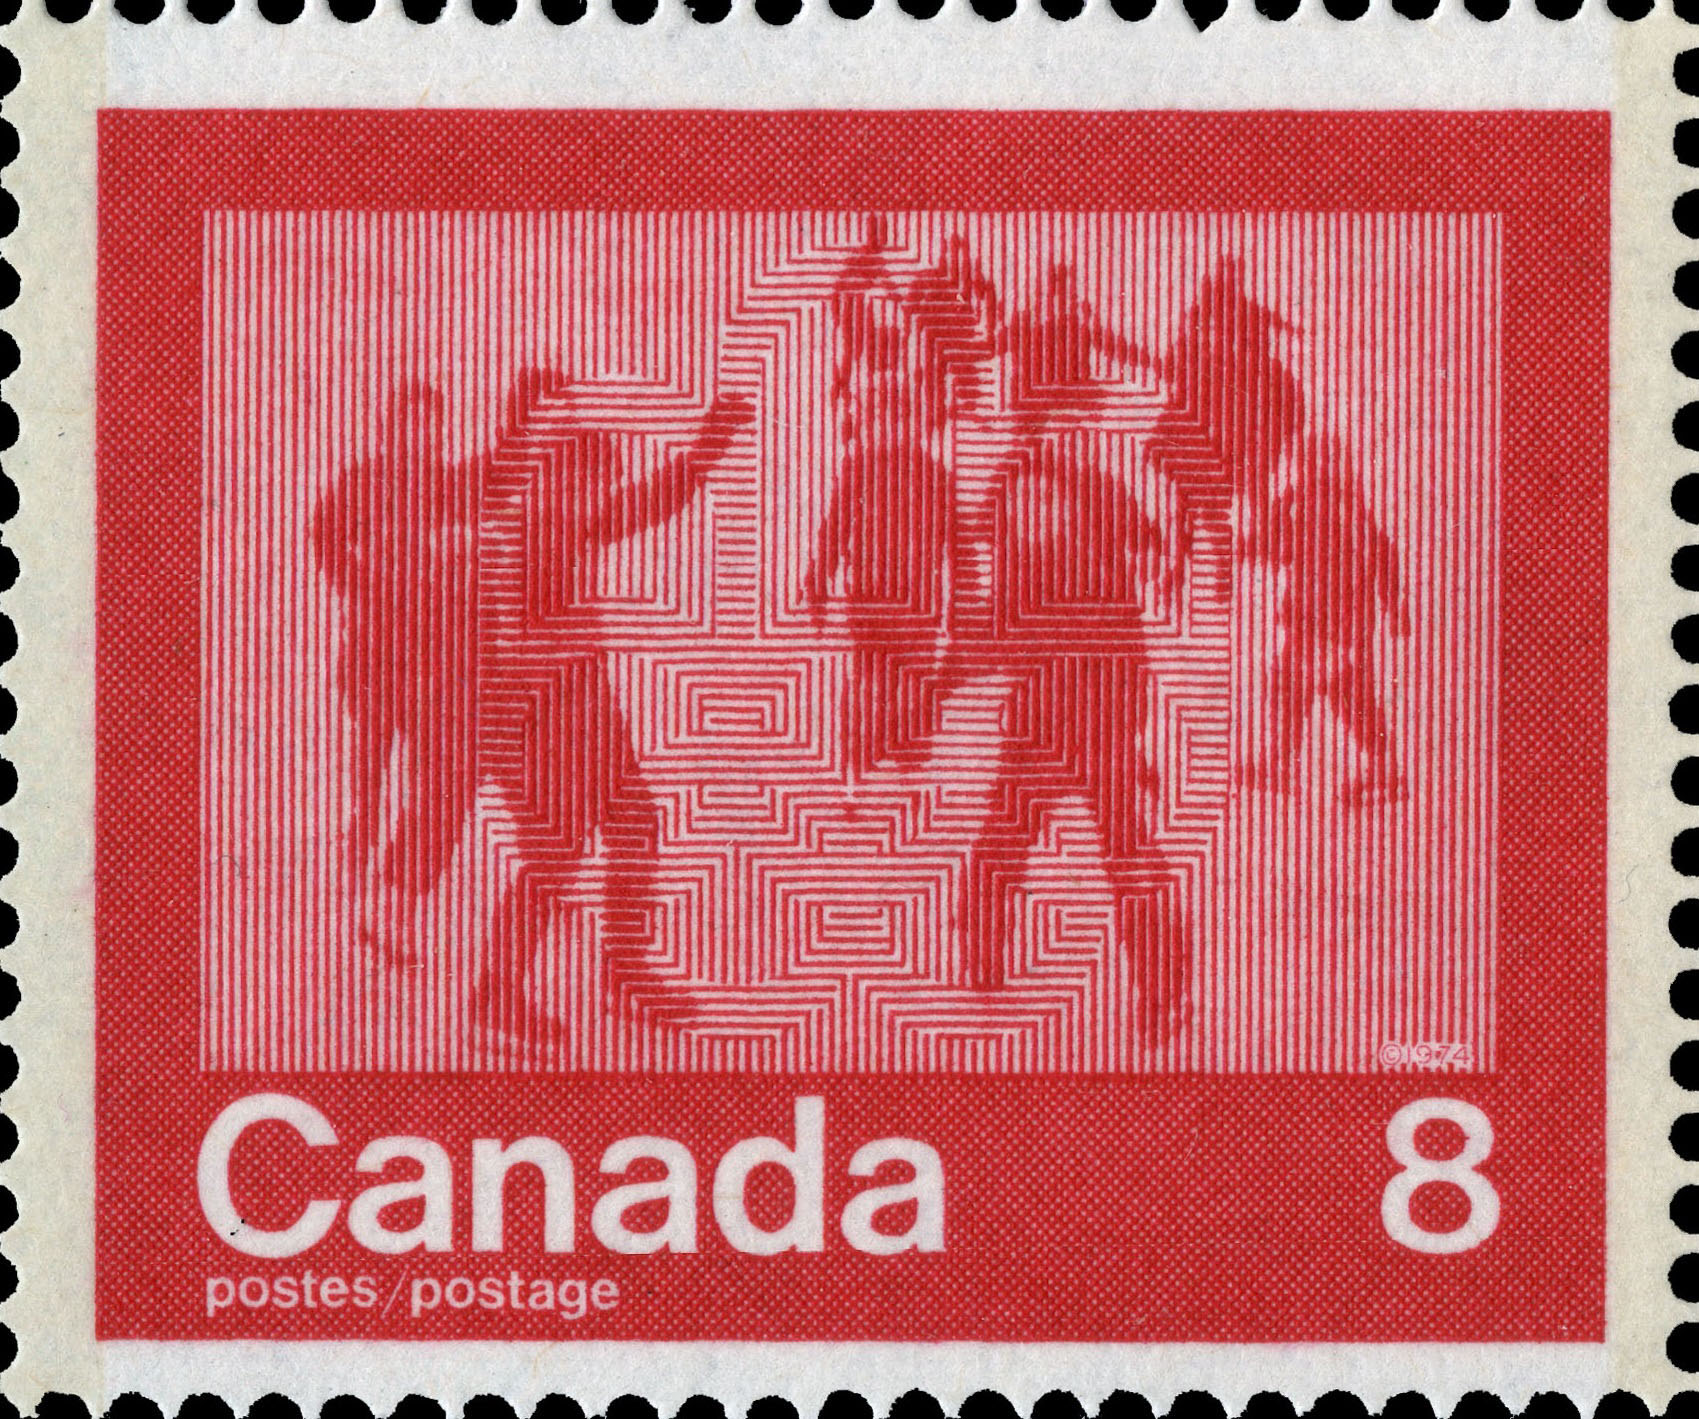 Skating Canada Postage Stamp | 1976 Olympic Games, Keeping Fit